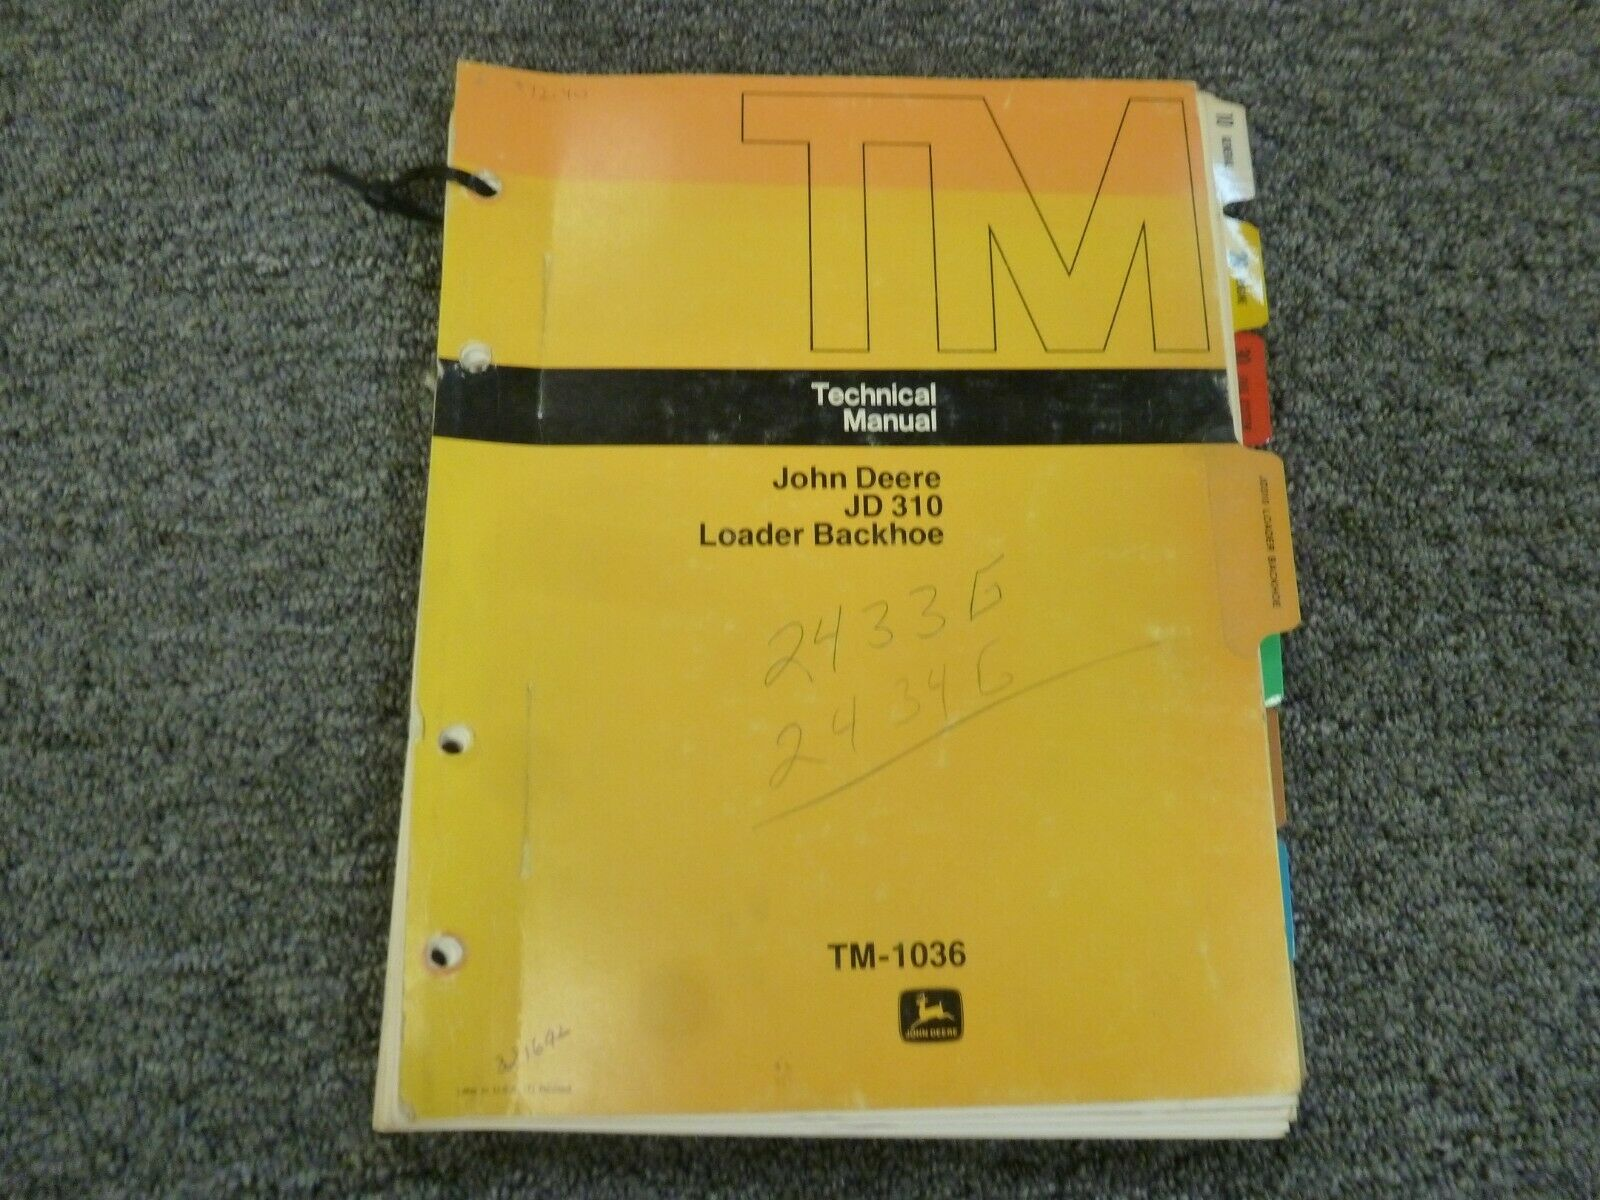 John Deere 310 Loader Backhoe Shop Service Repair Technical Manual Guide  TM1036 1 of 1Only 1 available ...